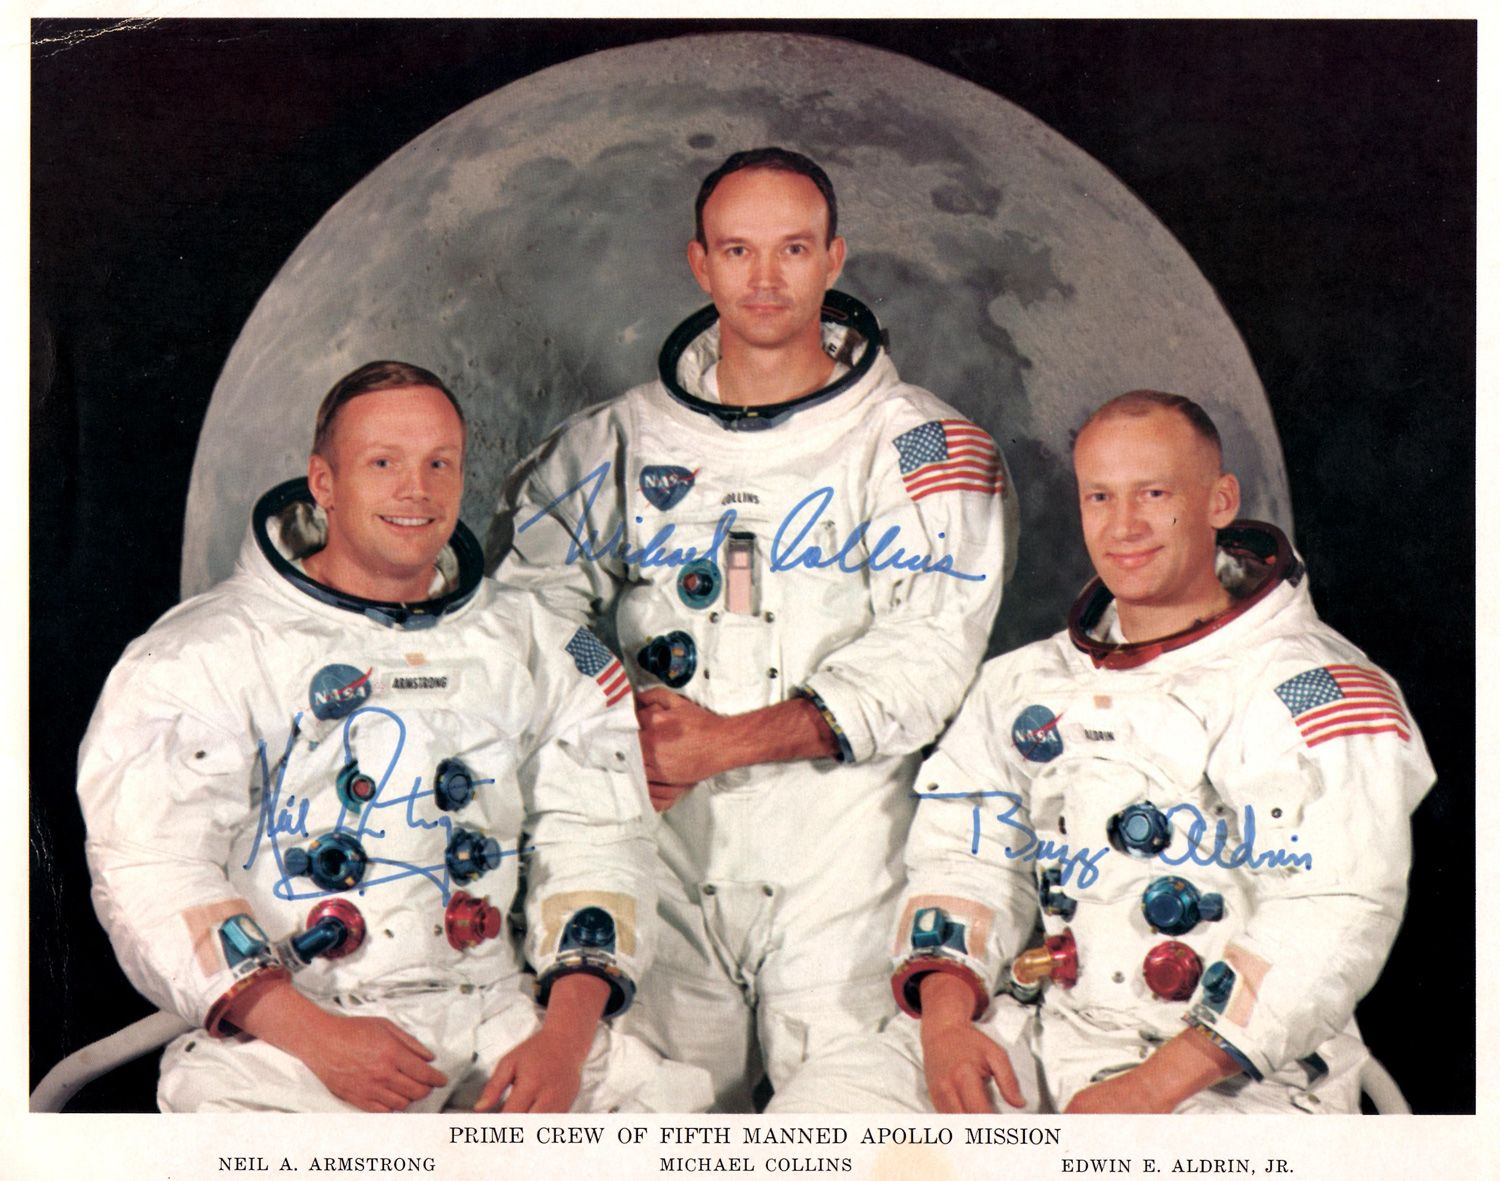 apollo 11 space mission doodle - photo #19